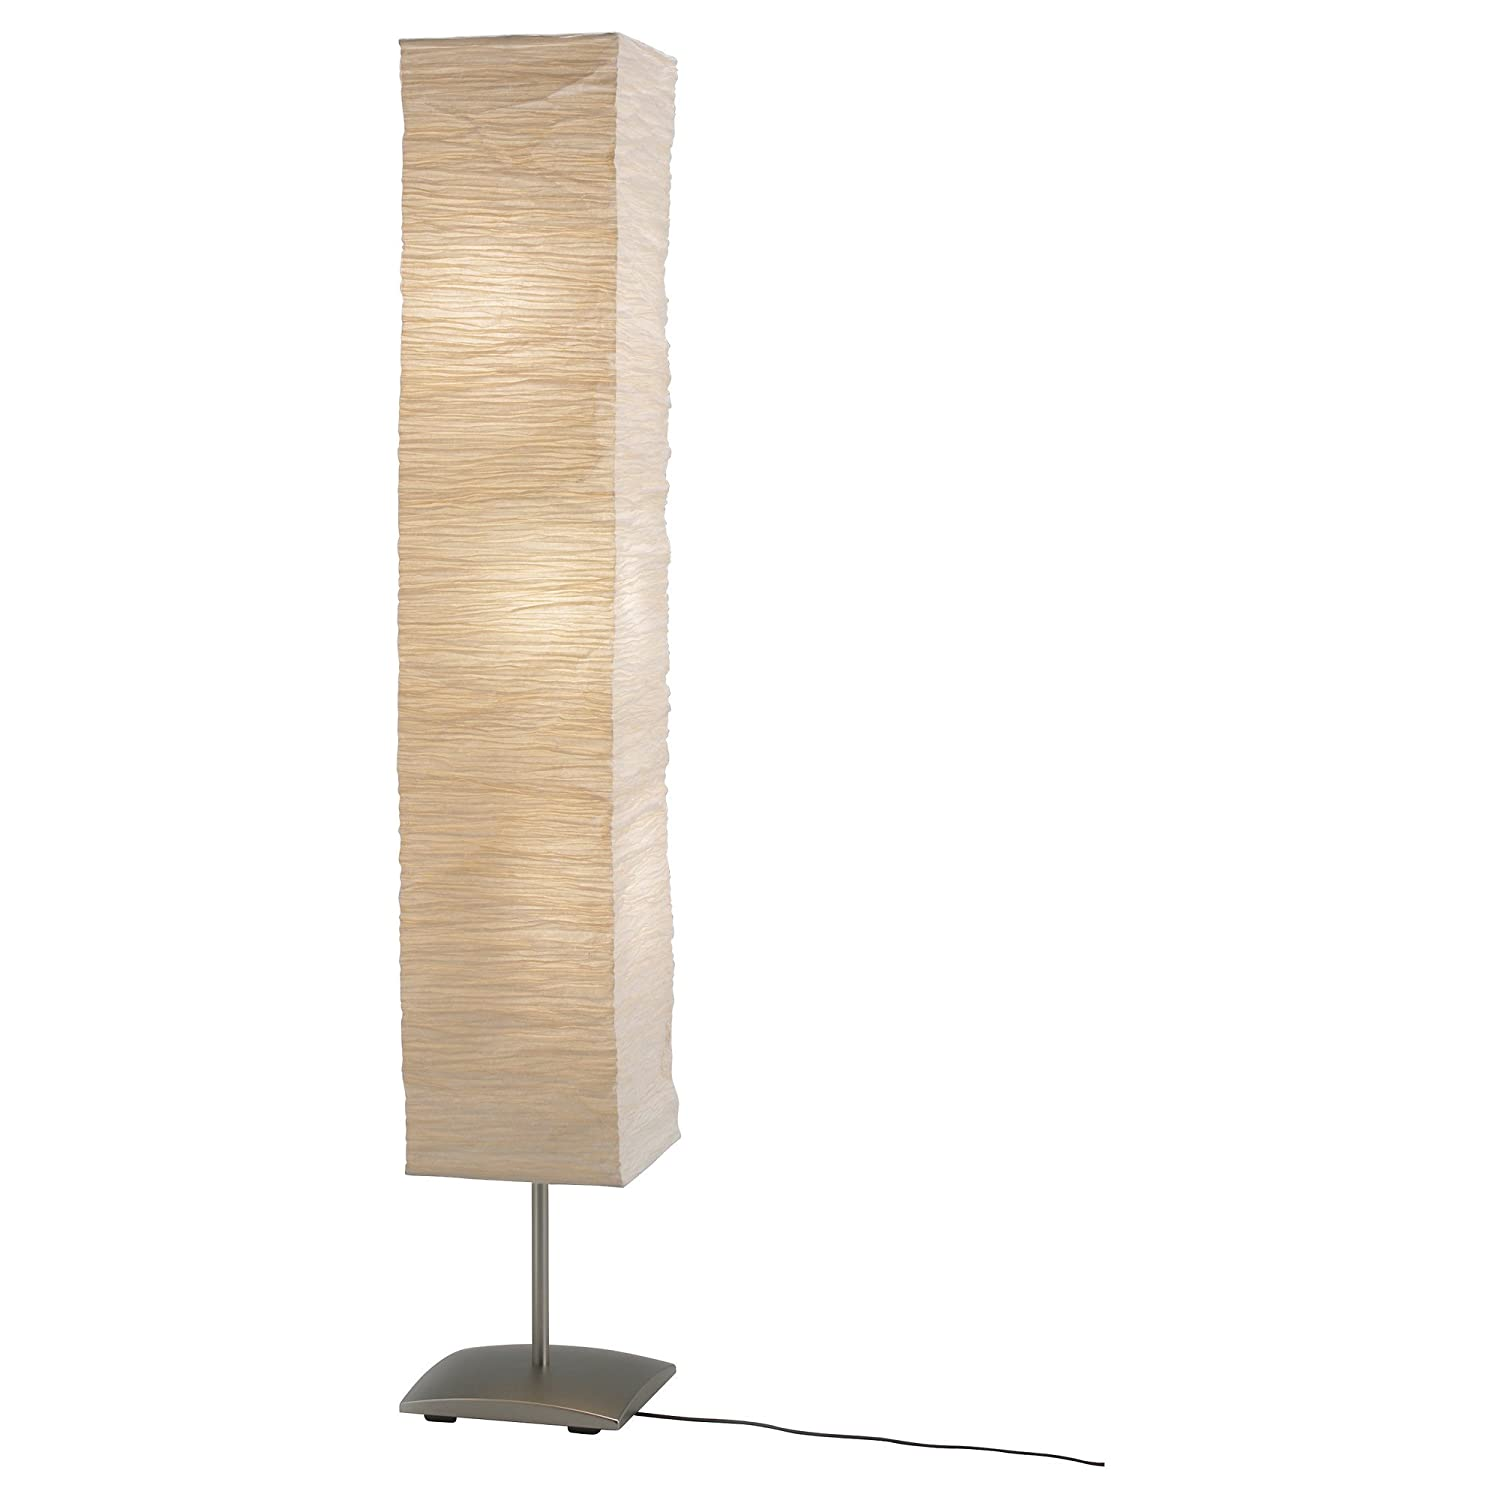 Rice paper shade mood floor lamp with 6 warm led bulbs are rice paper shade mood floor lamp with 6 warm led bulbs are included light bulbs amazon geotapseo Image collections